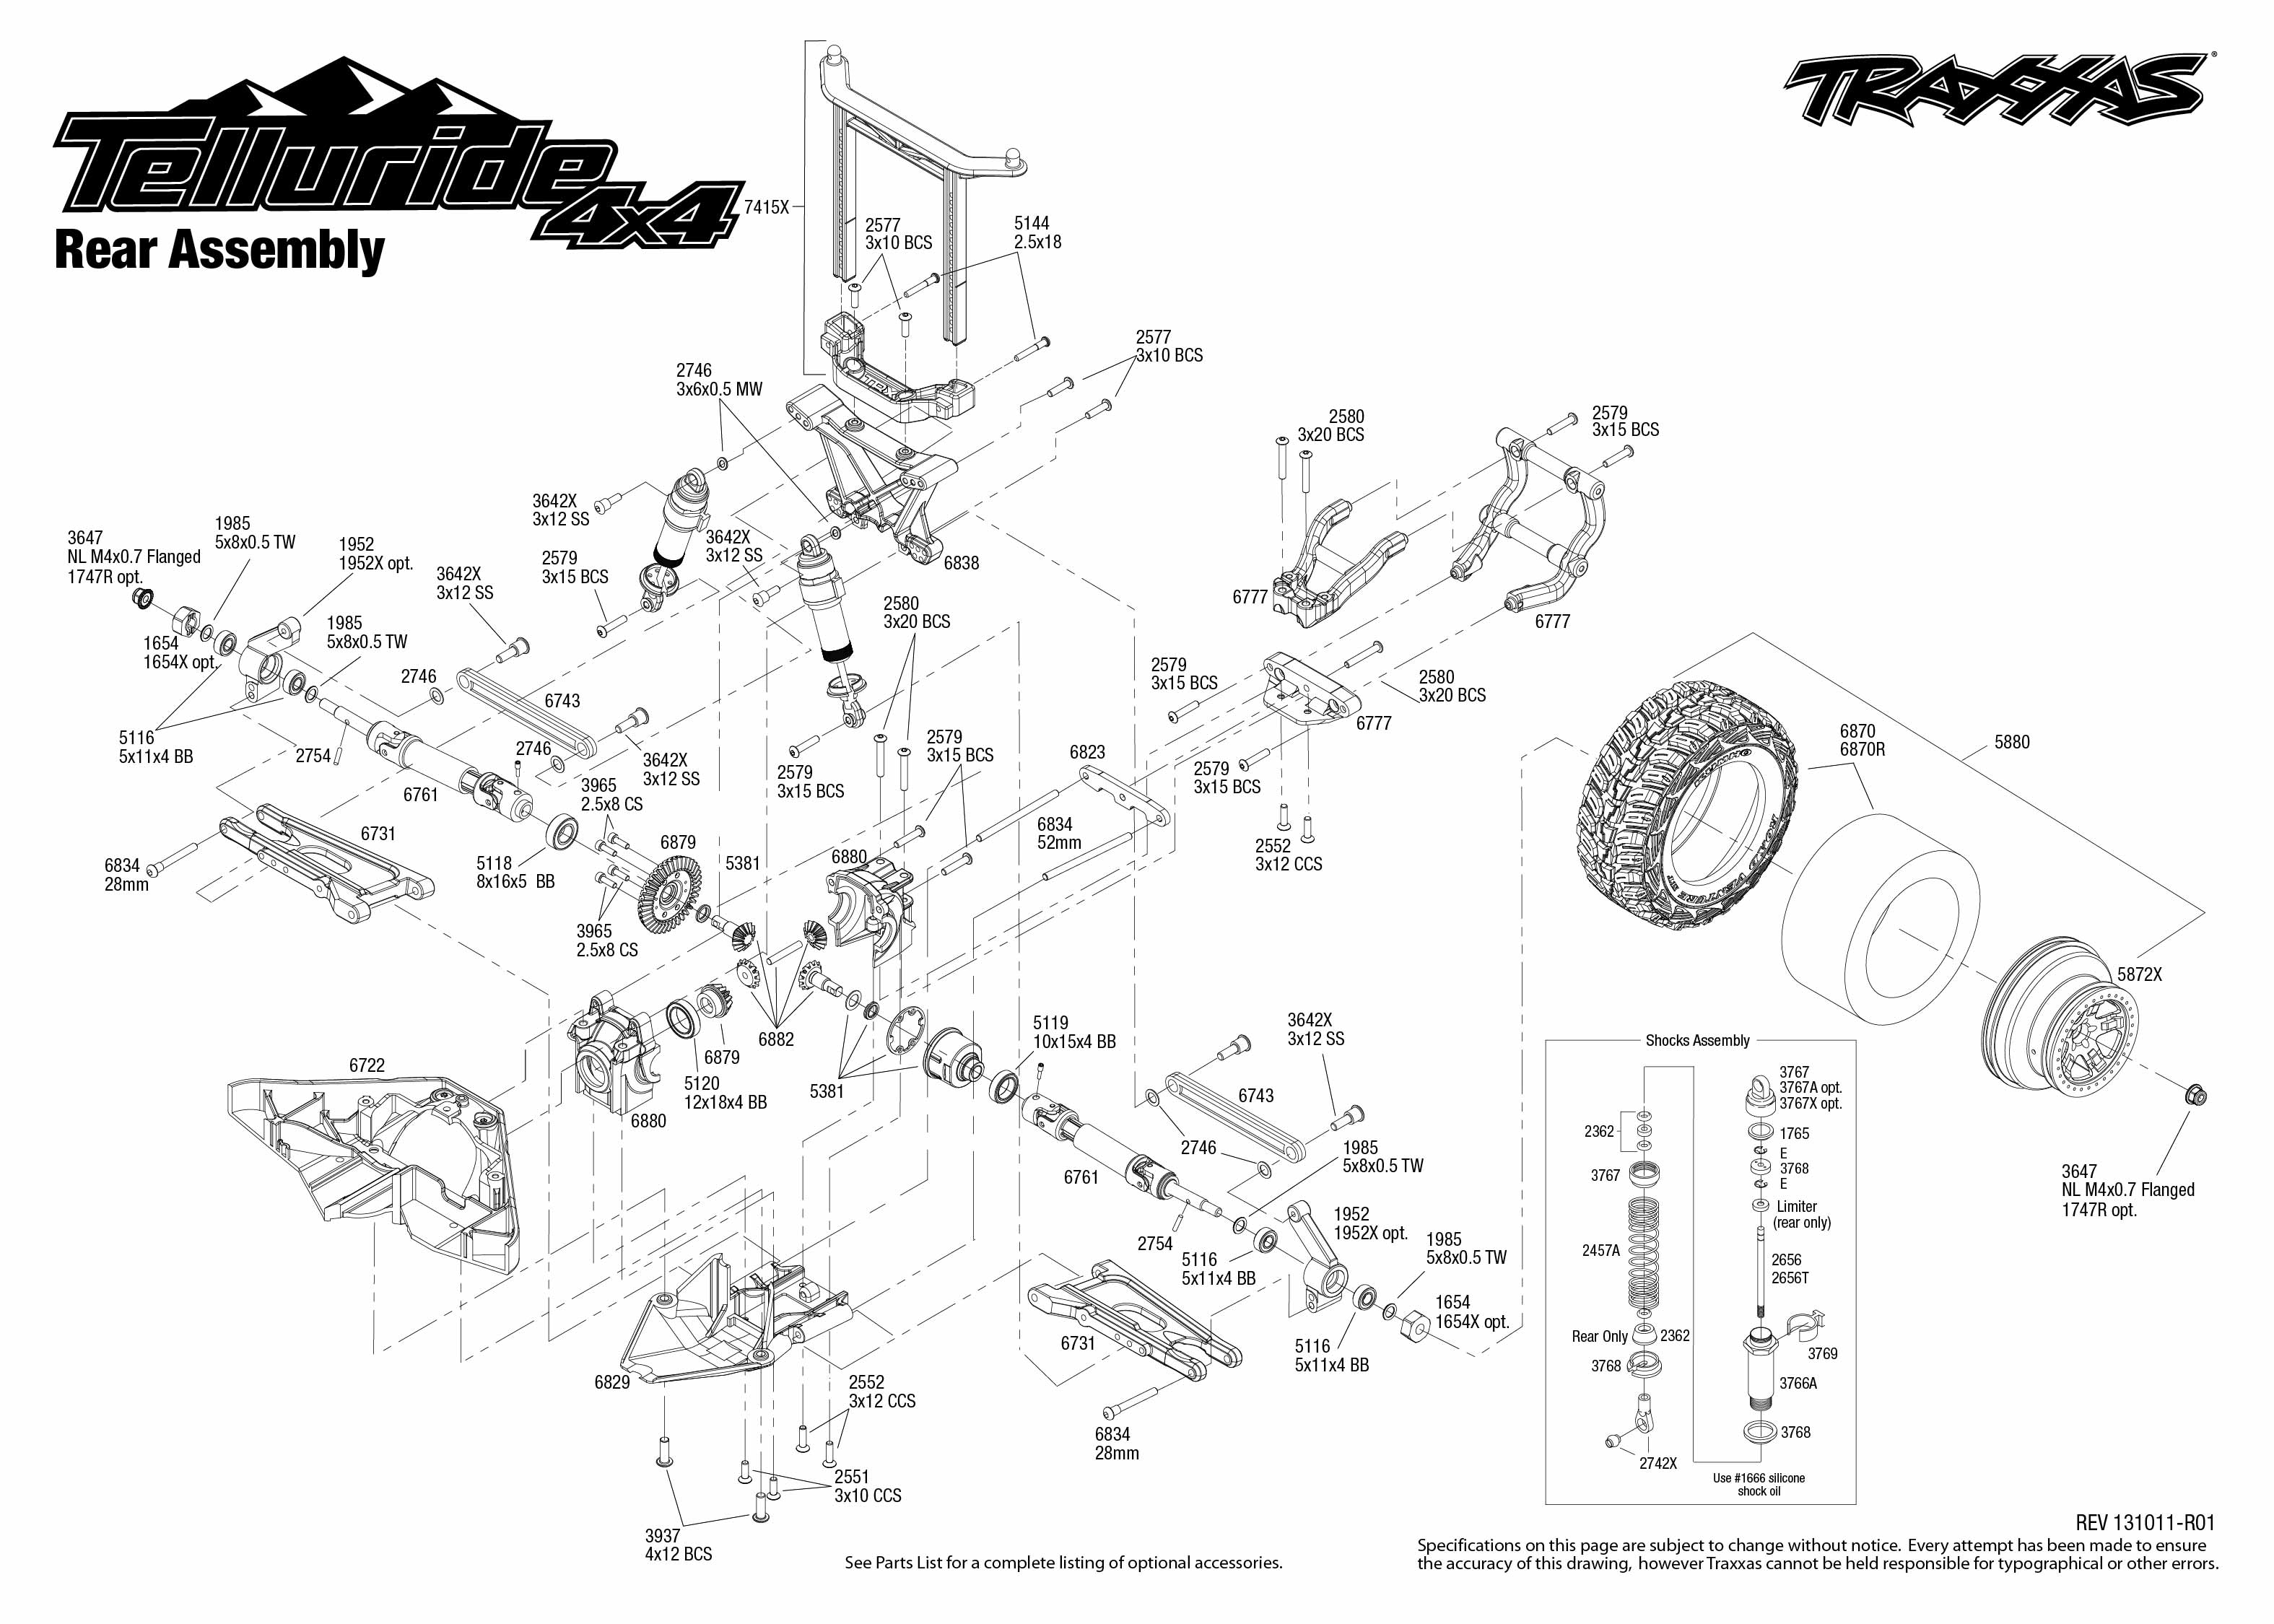 telluride 4x4 67044 rear assembly traxxas rh traxxas com traxxas summit parts diagram traxxas summit parts diagram